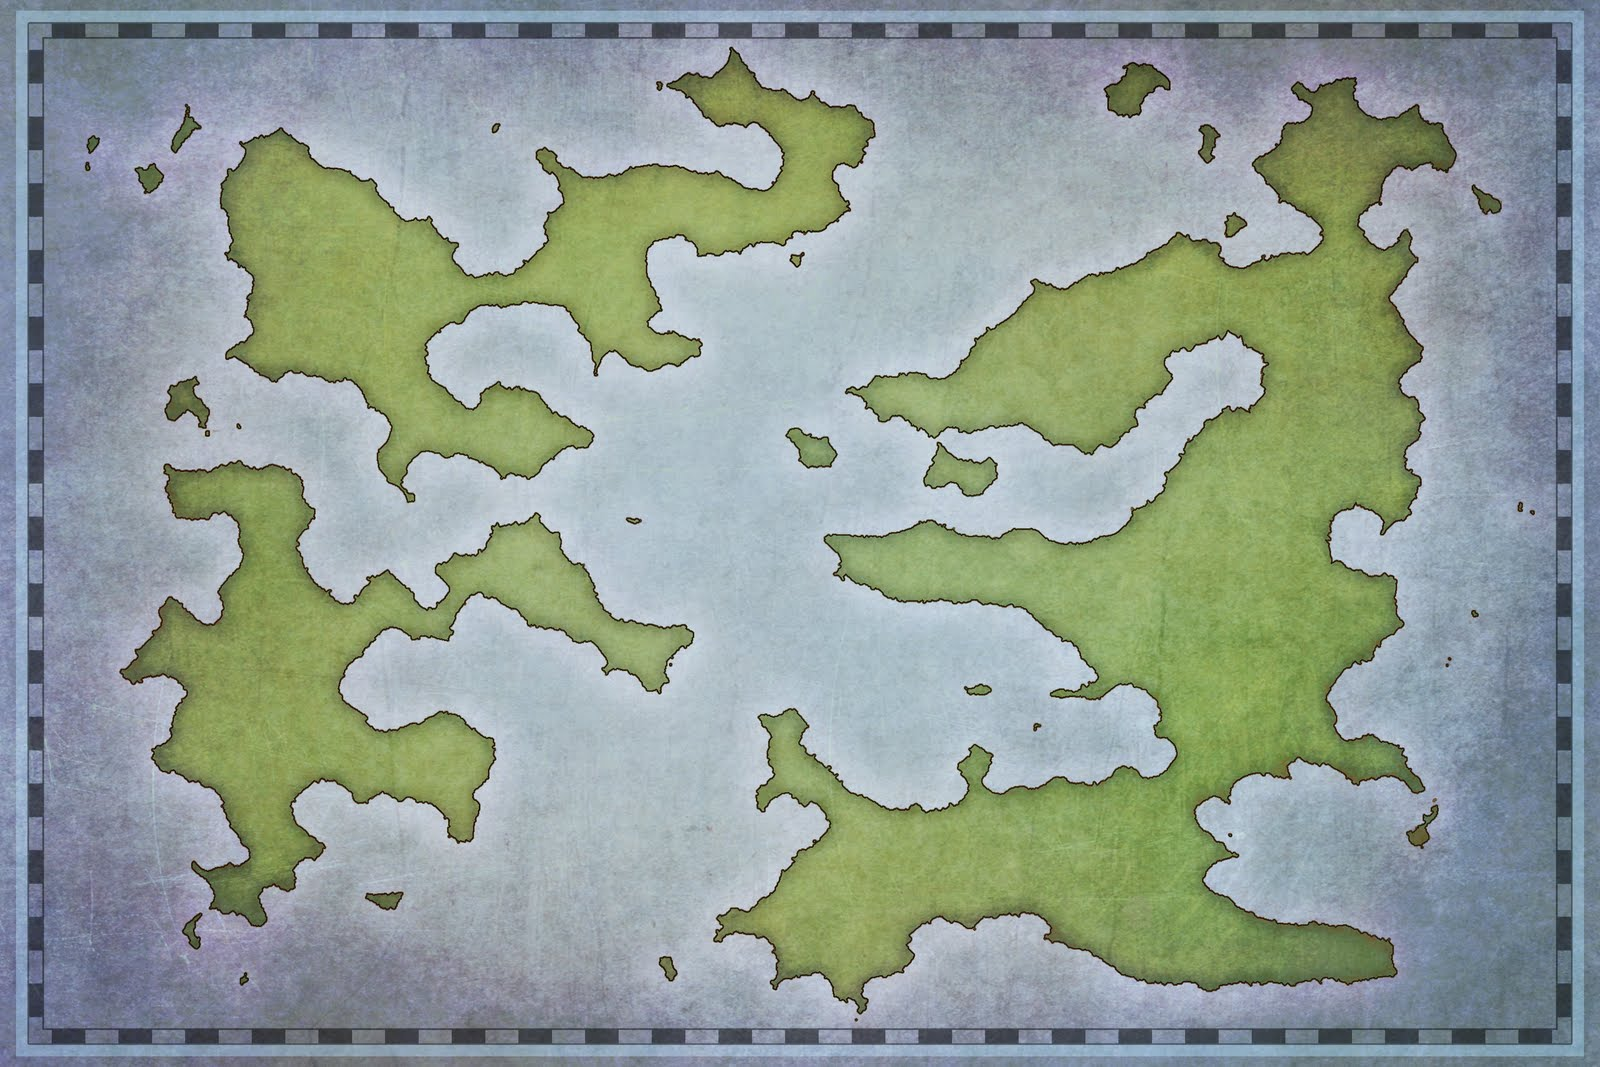 Monday maps free world map the labyrinth i havent started working on next weeks map yet so if you would like to see a certain kind of map island continent world regional etc now is the time gumiabroncs Images